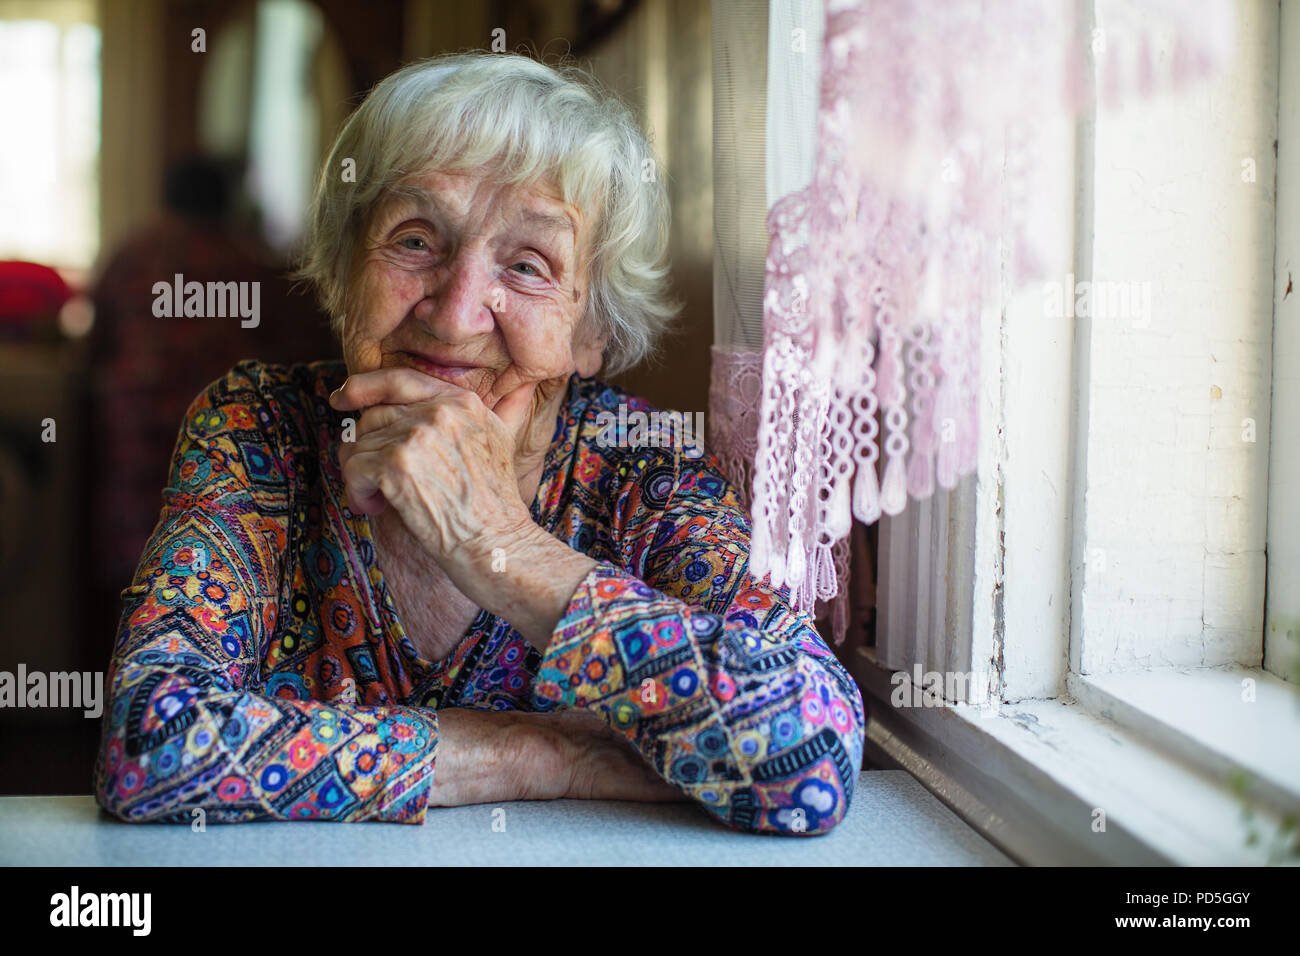 Portrait of an elderly woman, close-up, 80-90 years old. - Stock Image